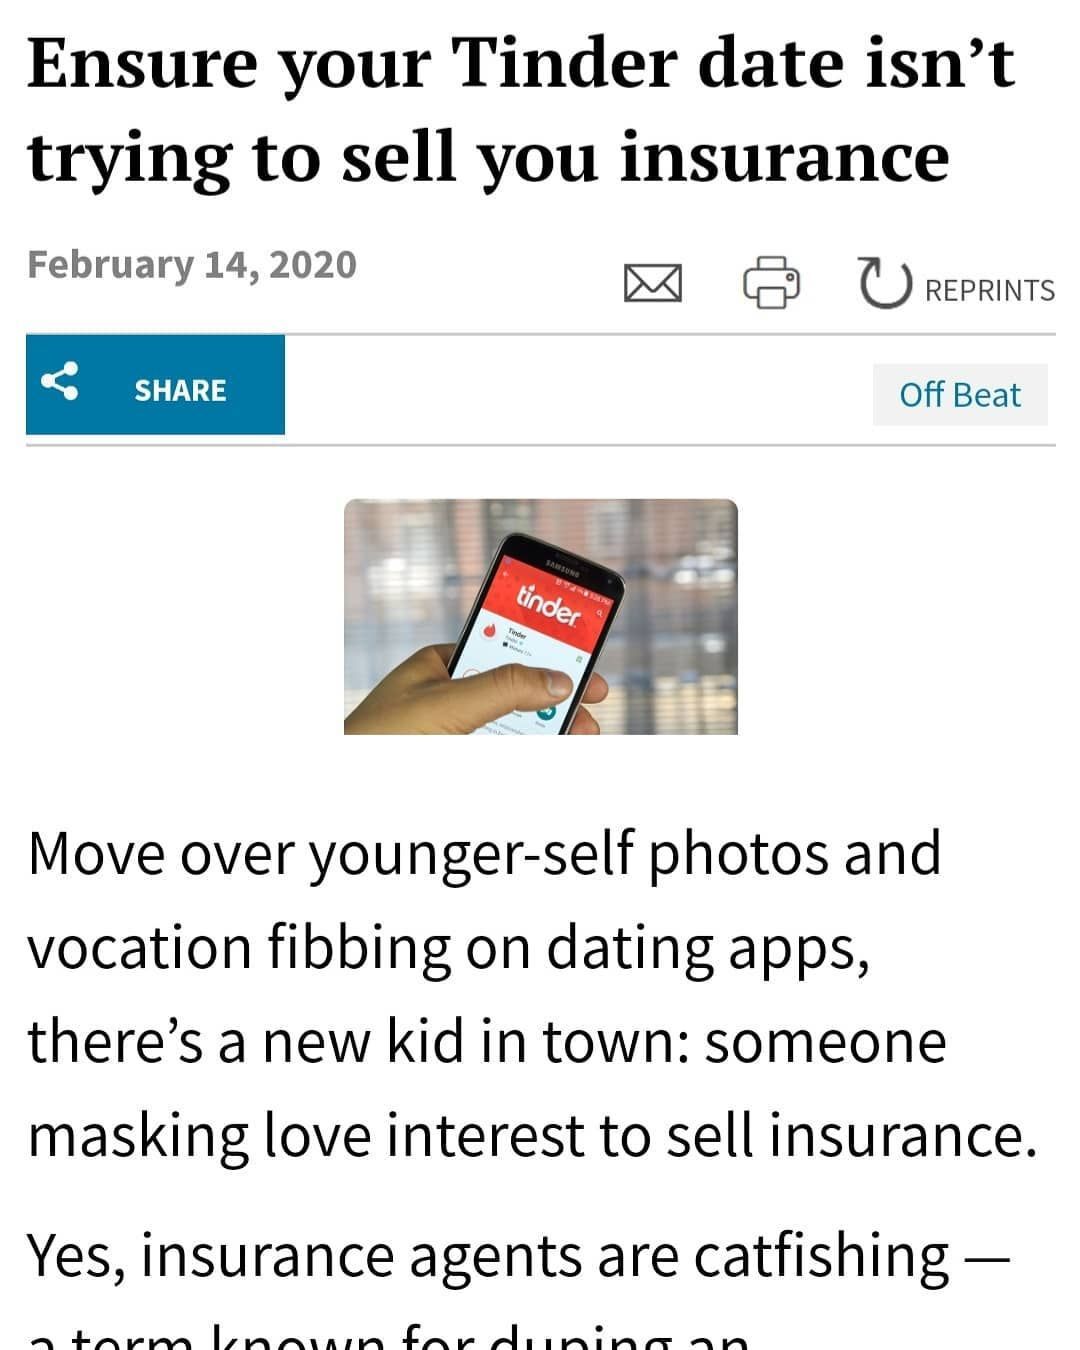 Found this interesting article on how insurance agents